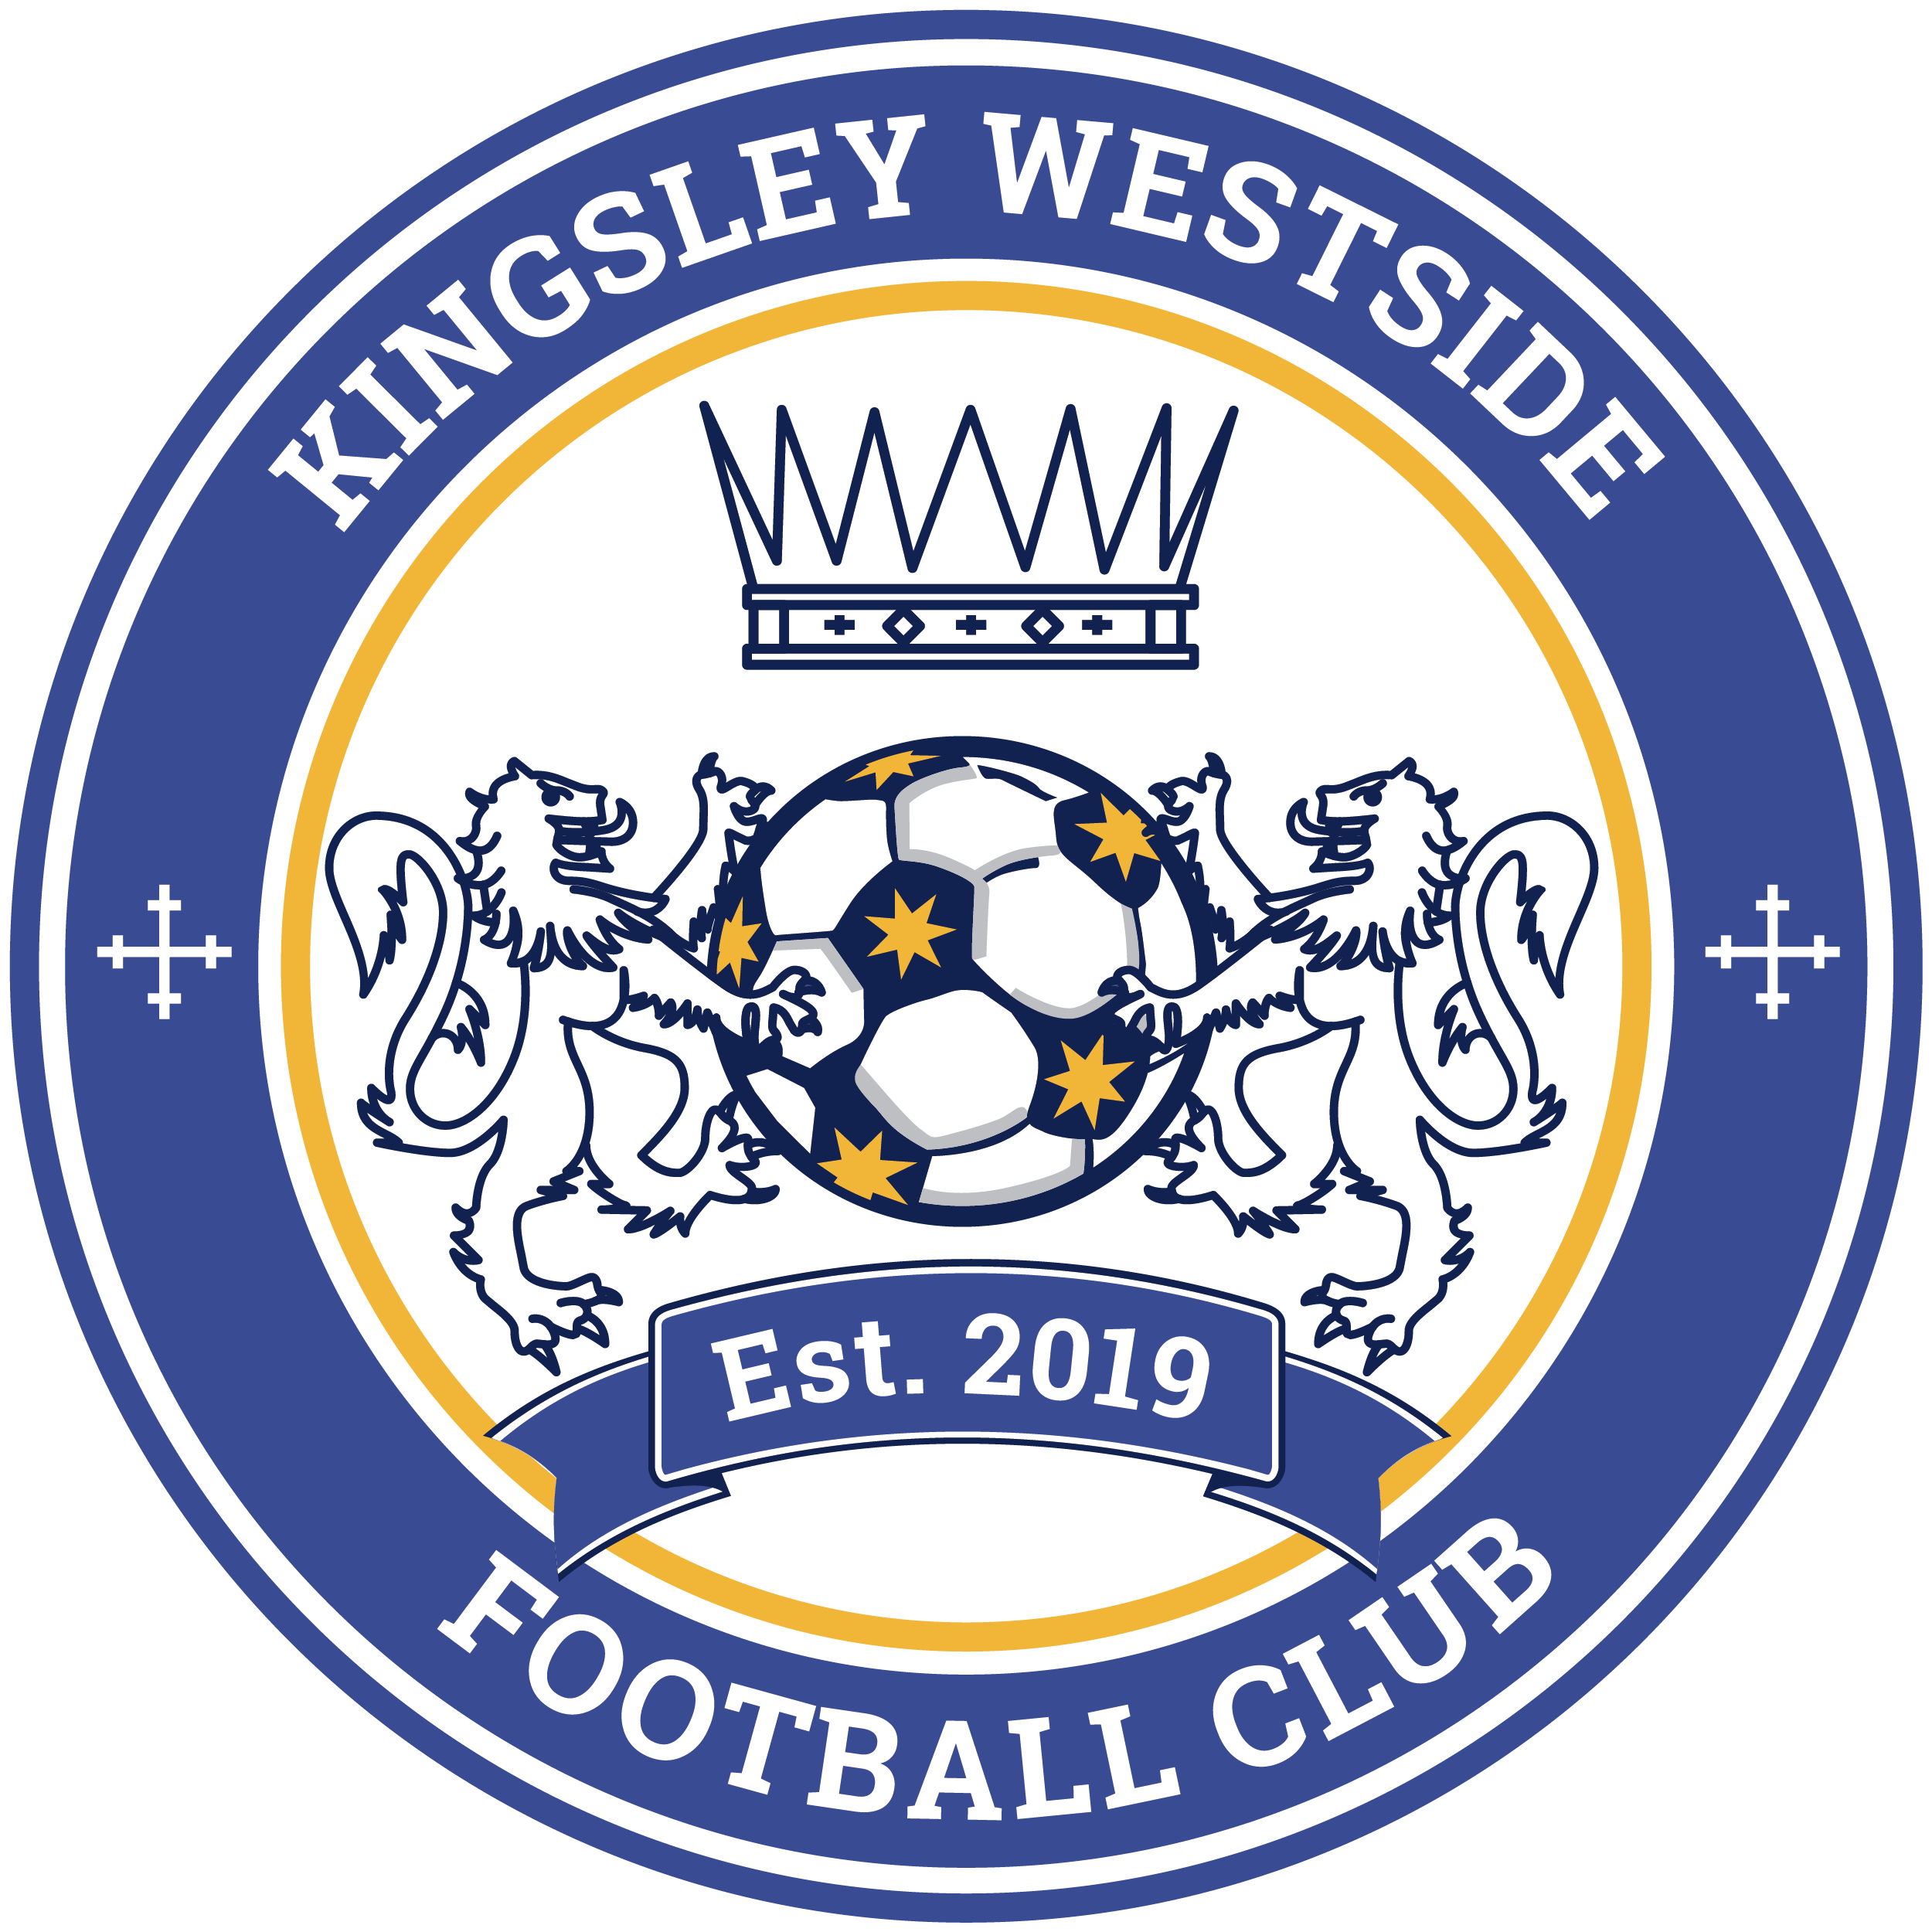 Kingsley Westside Football Club